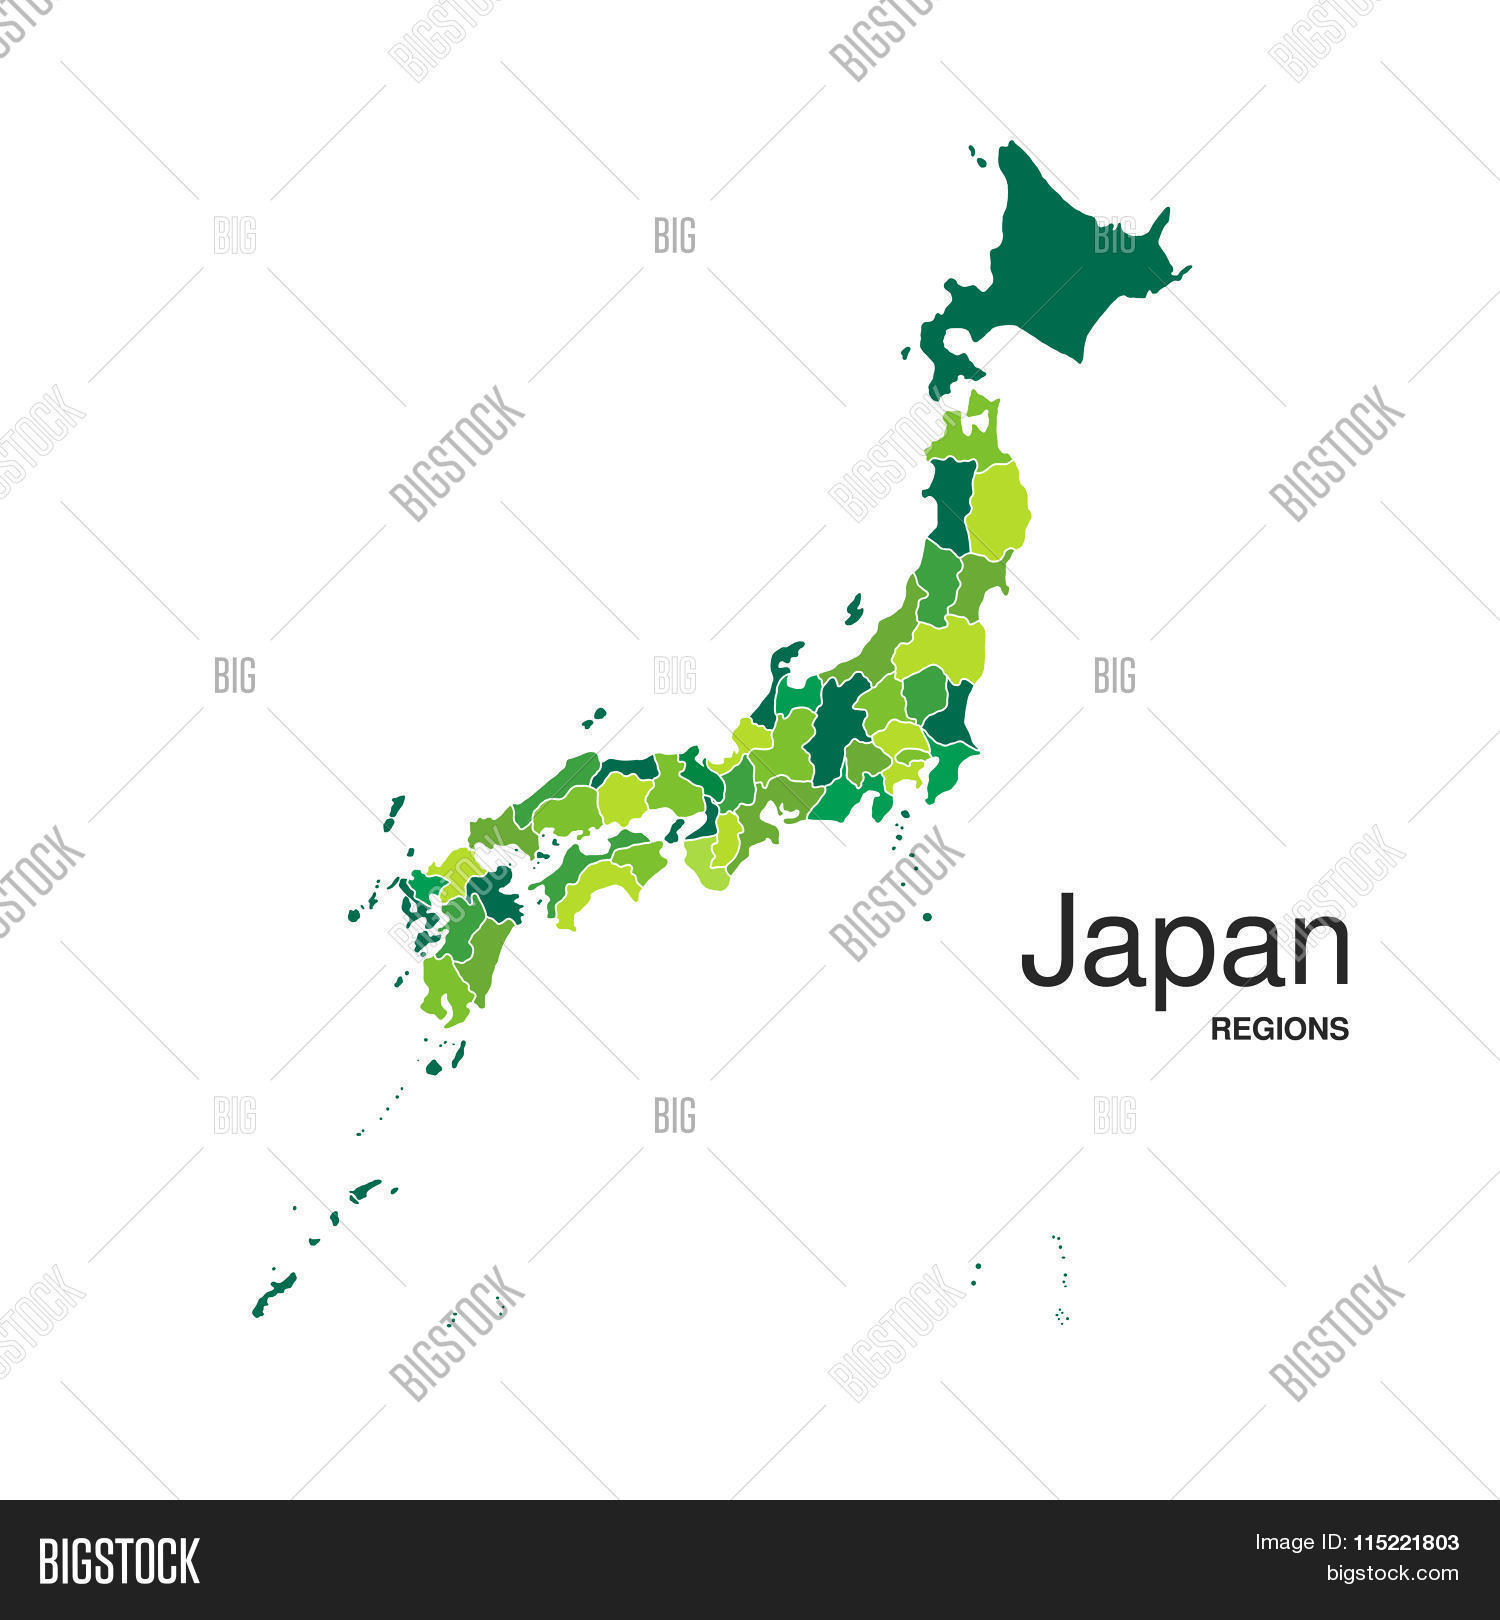 Regions Map Japan Vector & Photo (Free Trial) | Bigstock on map of former soviet union regions, map of venezuela regions, map of romania regions, map of native american indian regions, map of uganda regions, map of iran regions, map of malawi regions, map of idaho regions, map of sri lanka regions, map of botswana regions, map of ancient china regions, map of nicaragua regions, map of philippine regions, map of eastern europe regions, map of the u.s regions, map india regions, map of tea regions, map of bia regions, map of international regions, map of guinea regions,